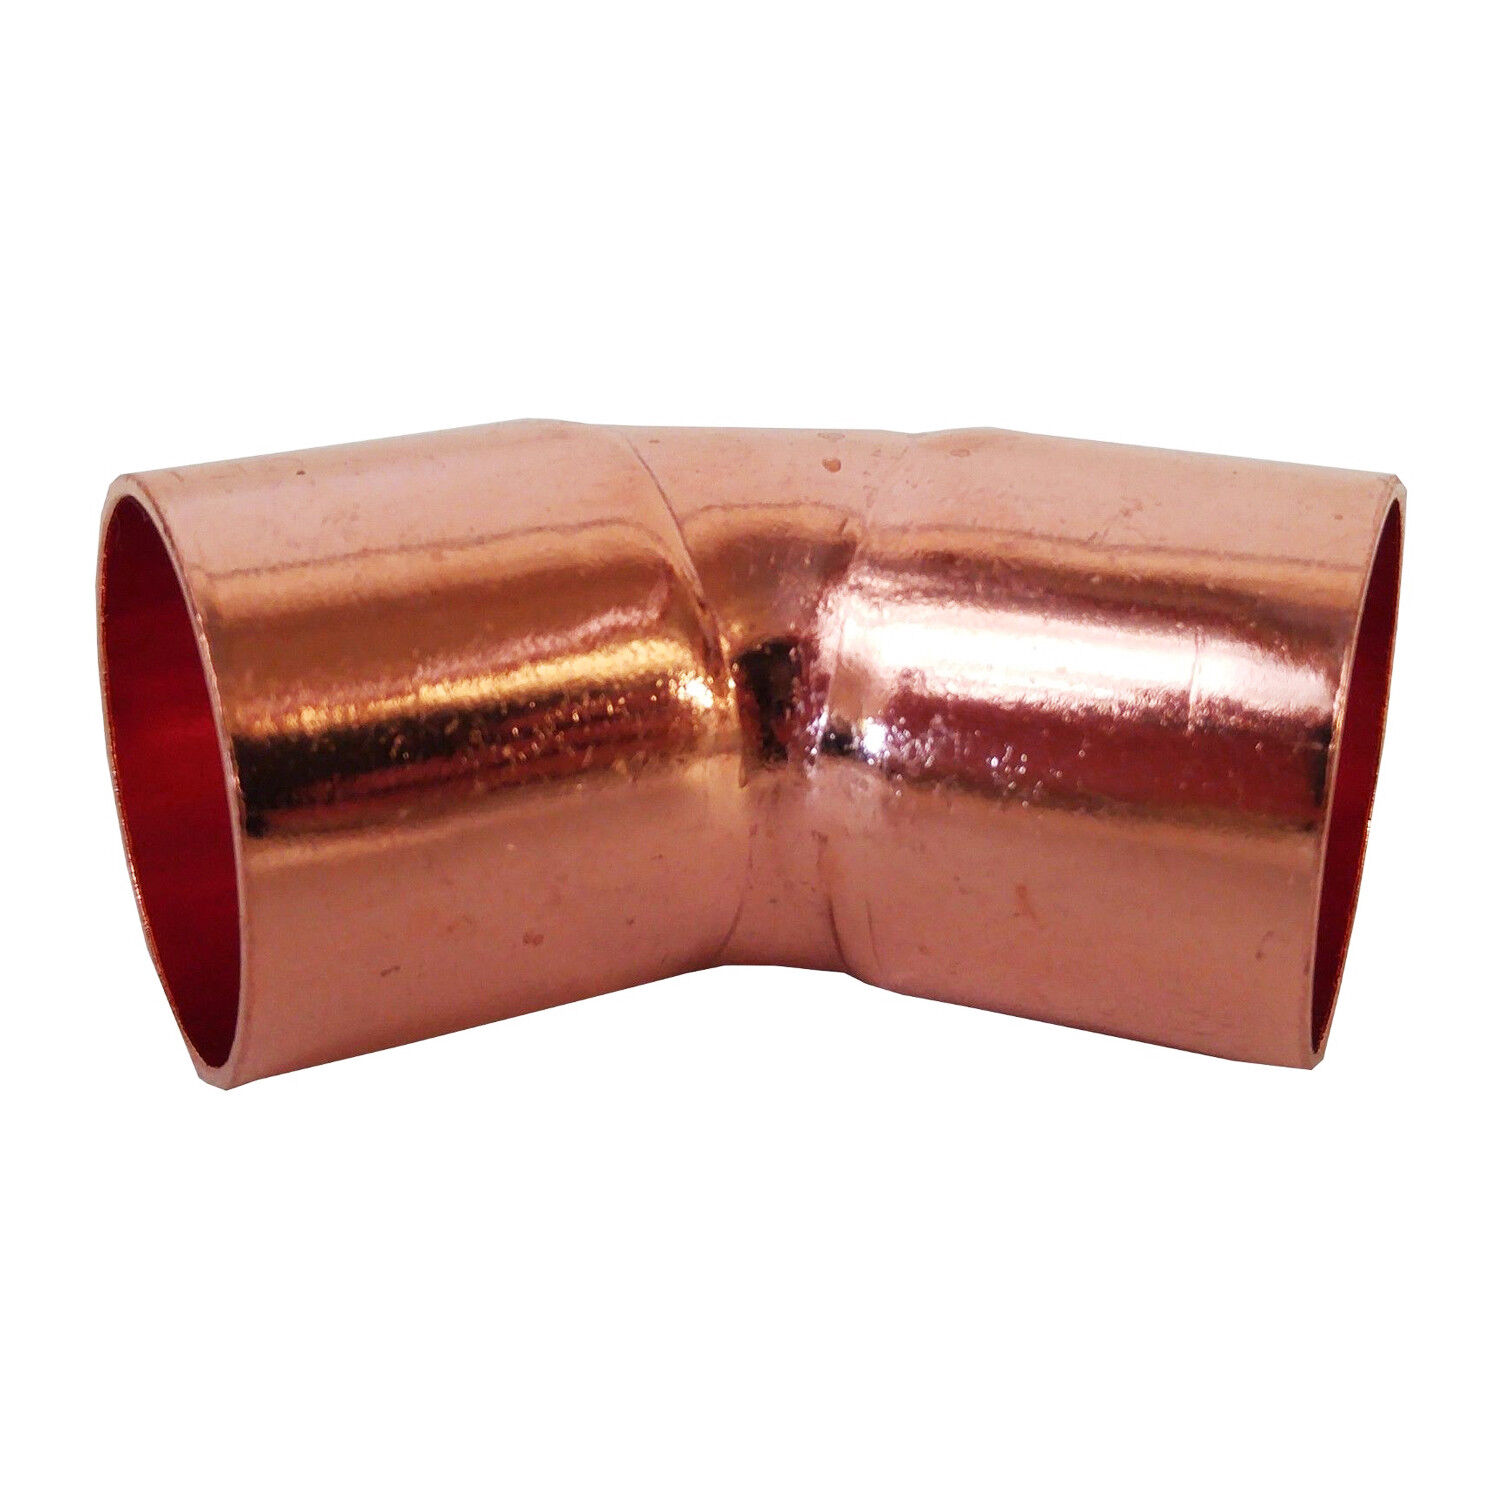 2 Quot 45 Degrees Elbow C X C Copper Pipe Fitting Ebay